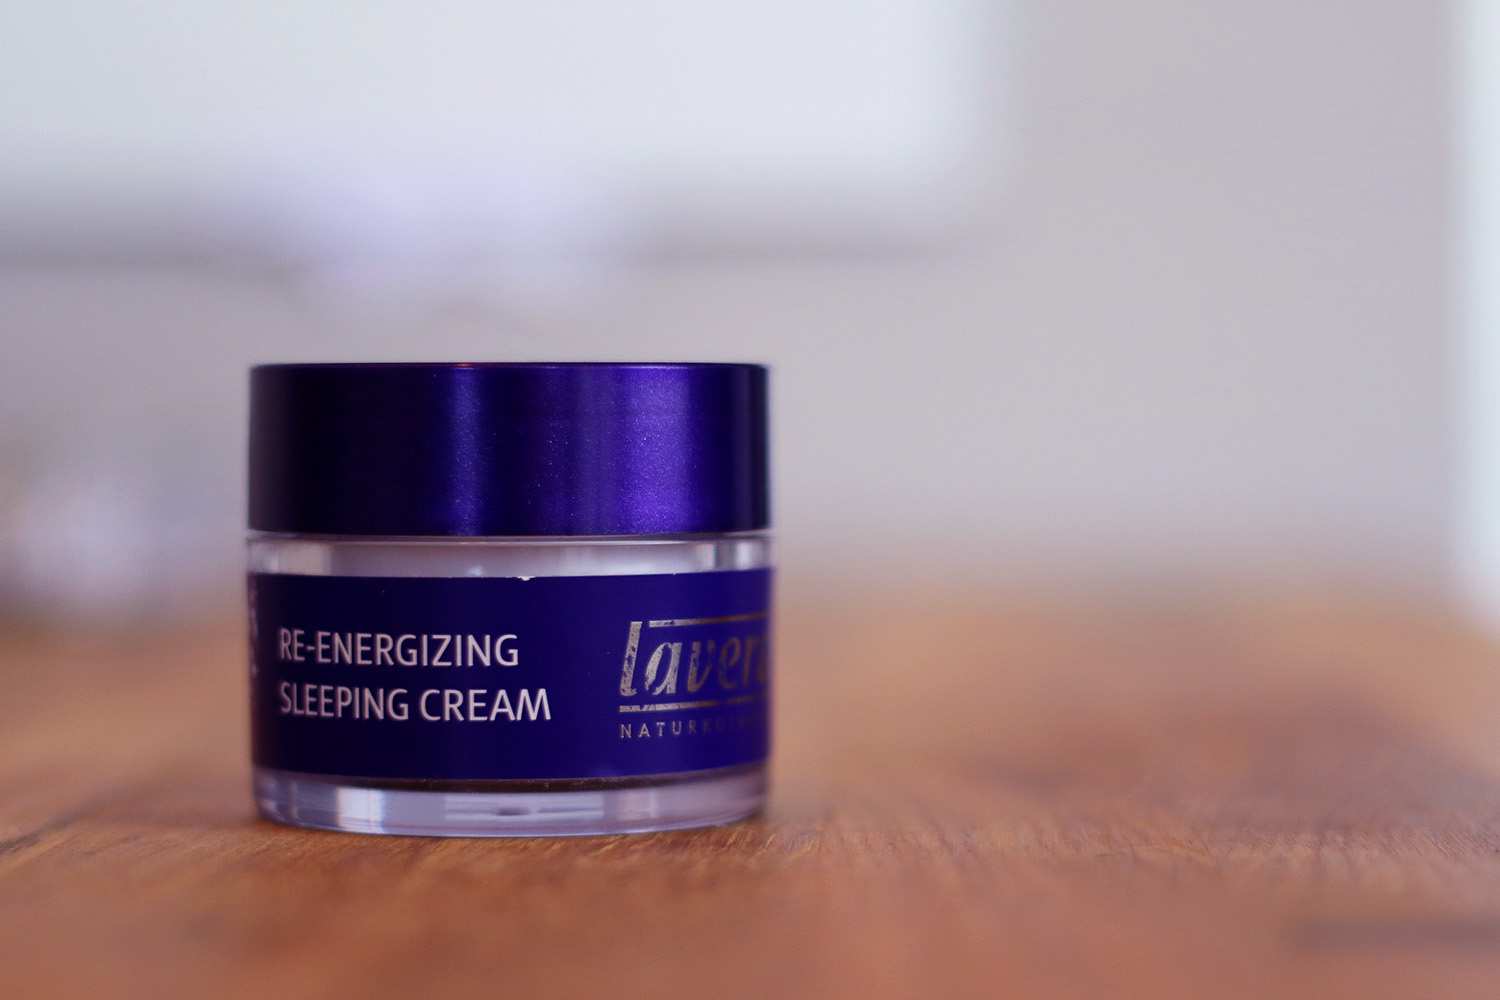 Lavera Naturkosmetik Nachtcreme Re Energizing Sleeping Creme Aufgebraucht Beauty Naturkometik Review Erfahrungsbericht Beauty Blog Berlin Advanceyourstyle